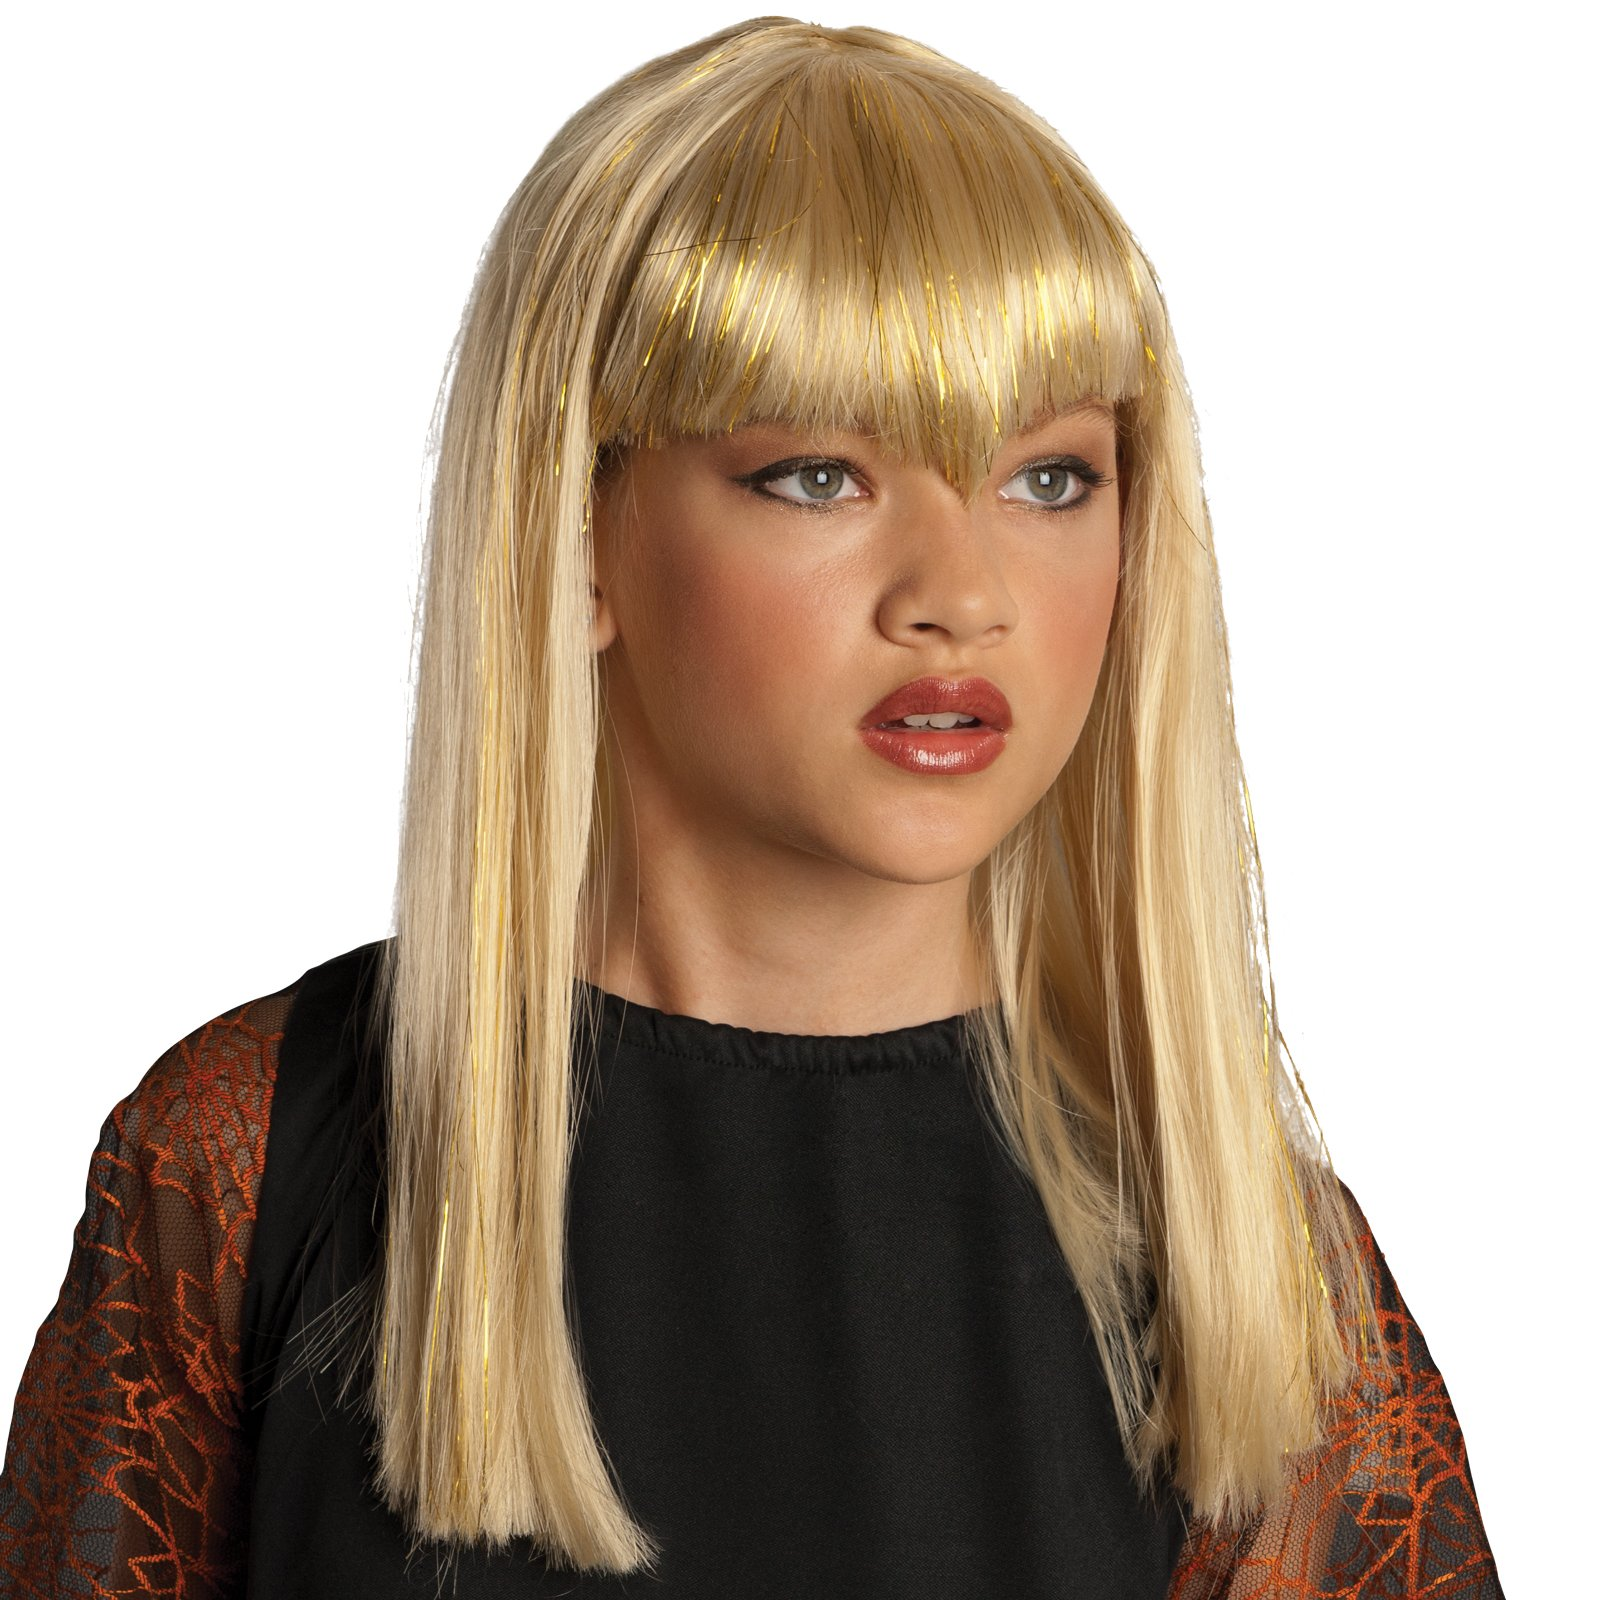 Glitter Vamp Blonde Child Wig